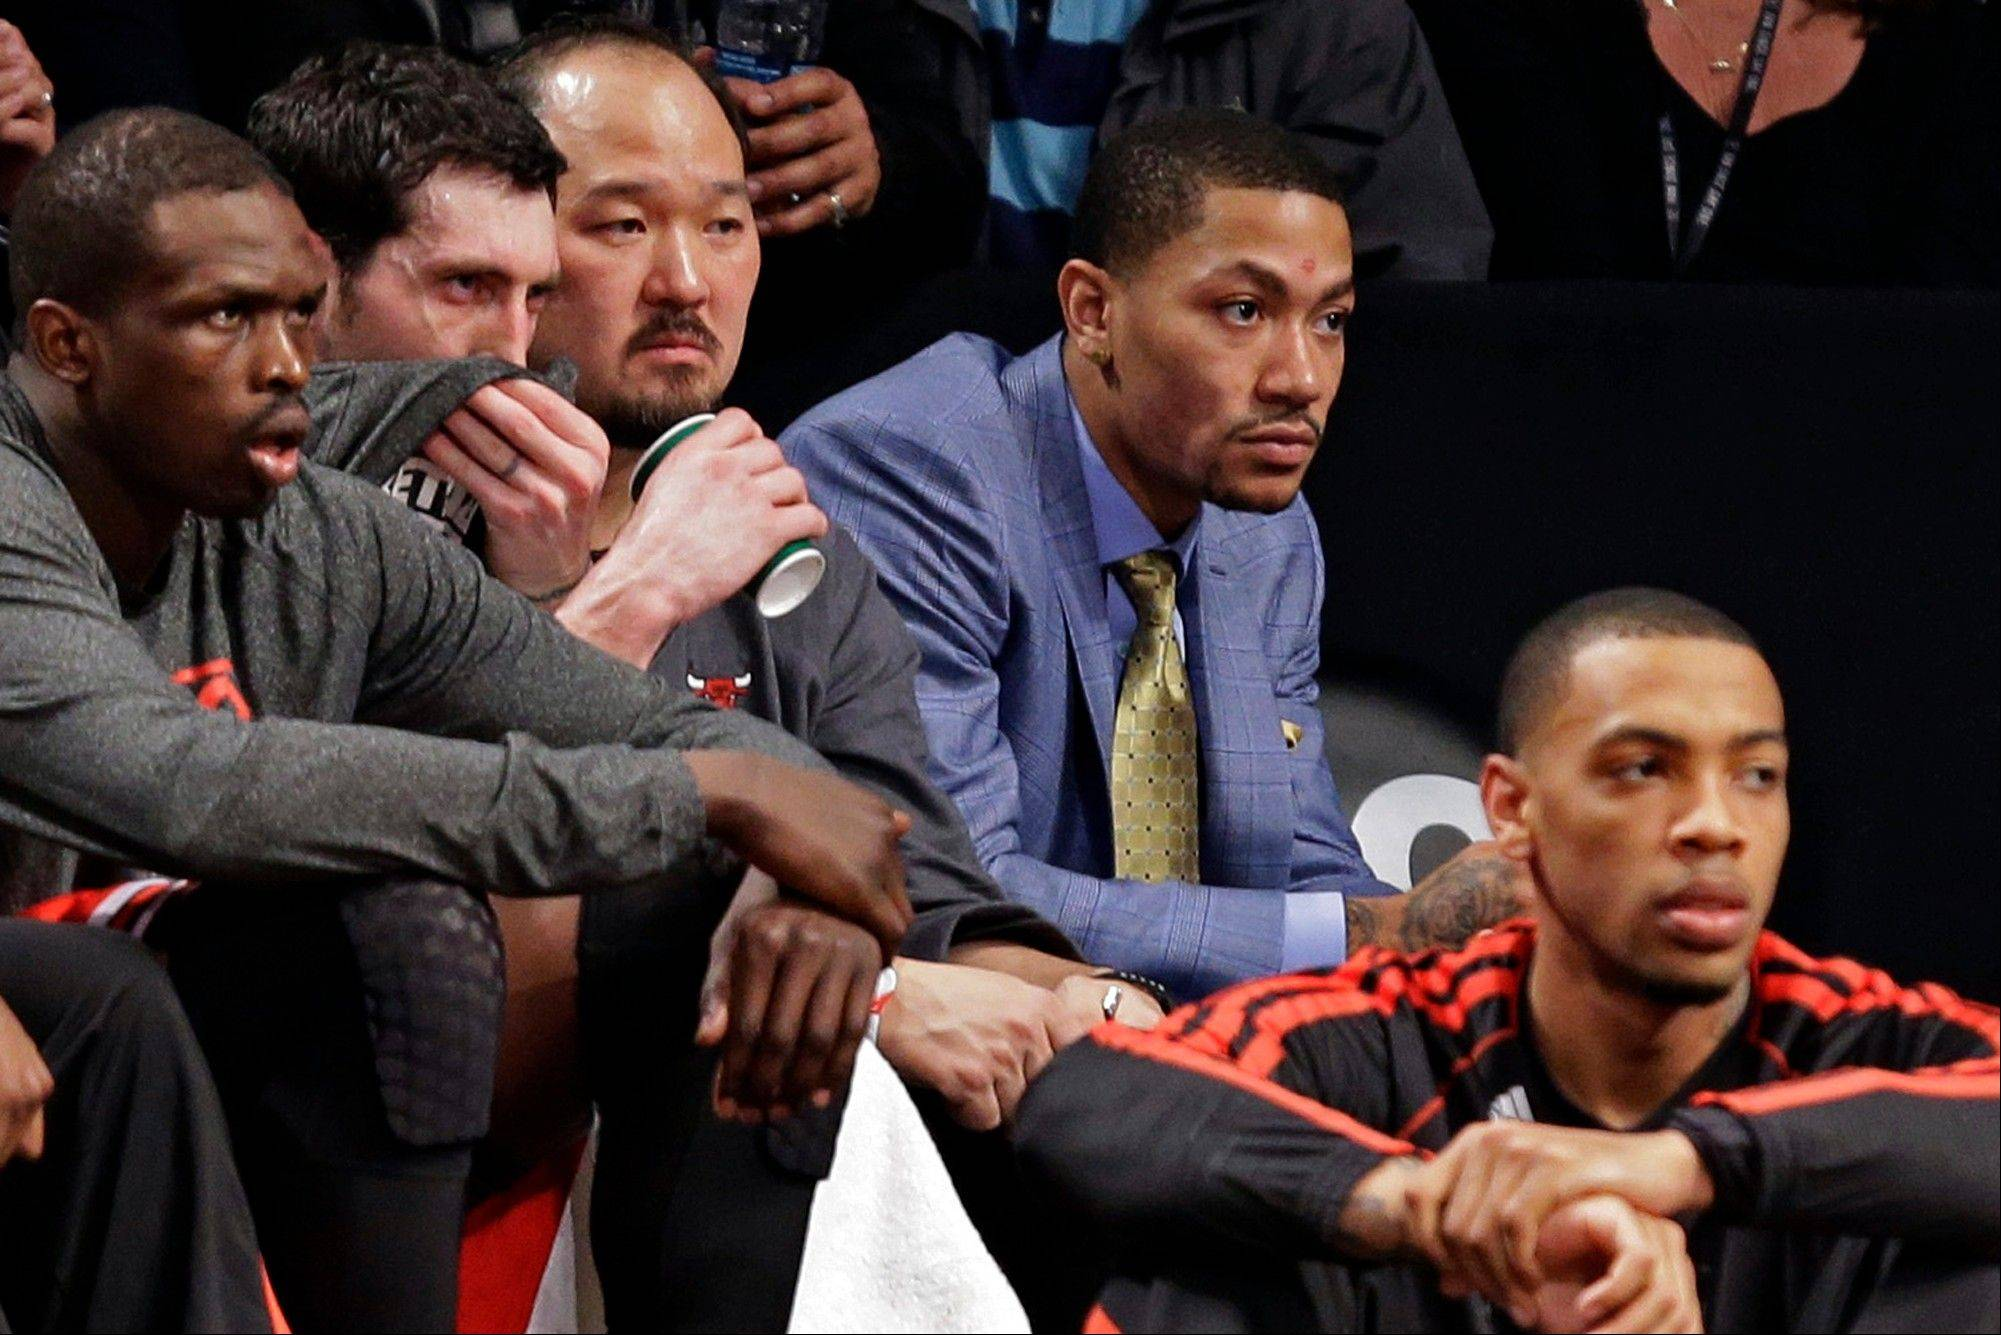 Bulls guard Derrick Rose, second from right, watches from the bench during the second half of Game 2 of a first-round playoff series against the Brooklyn Nets.